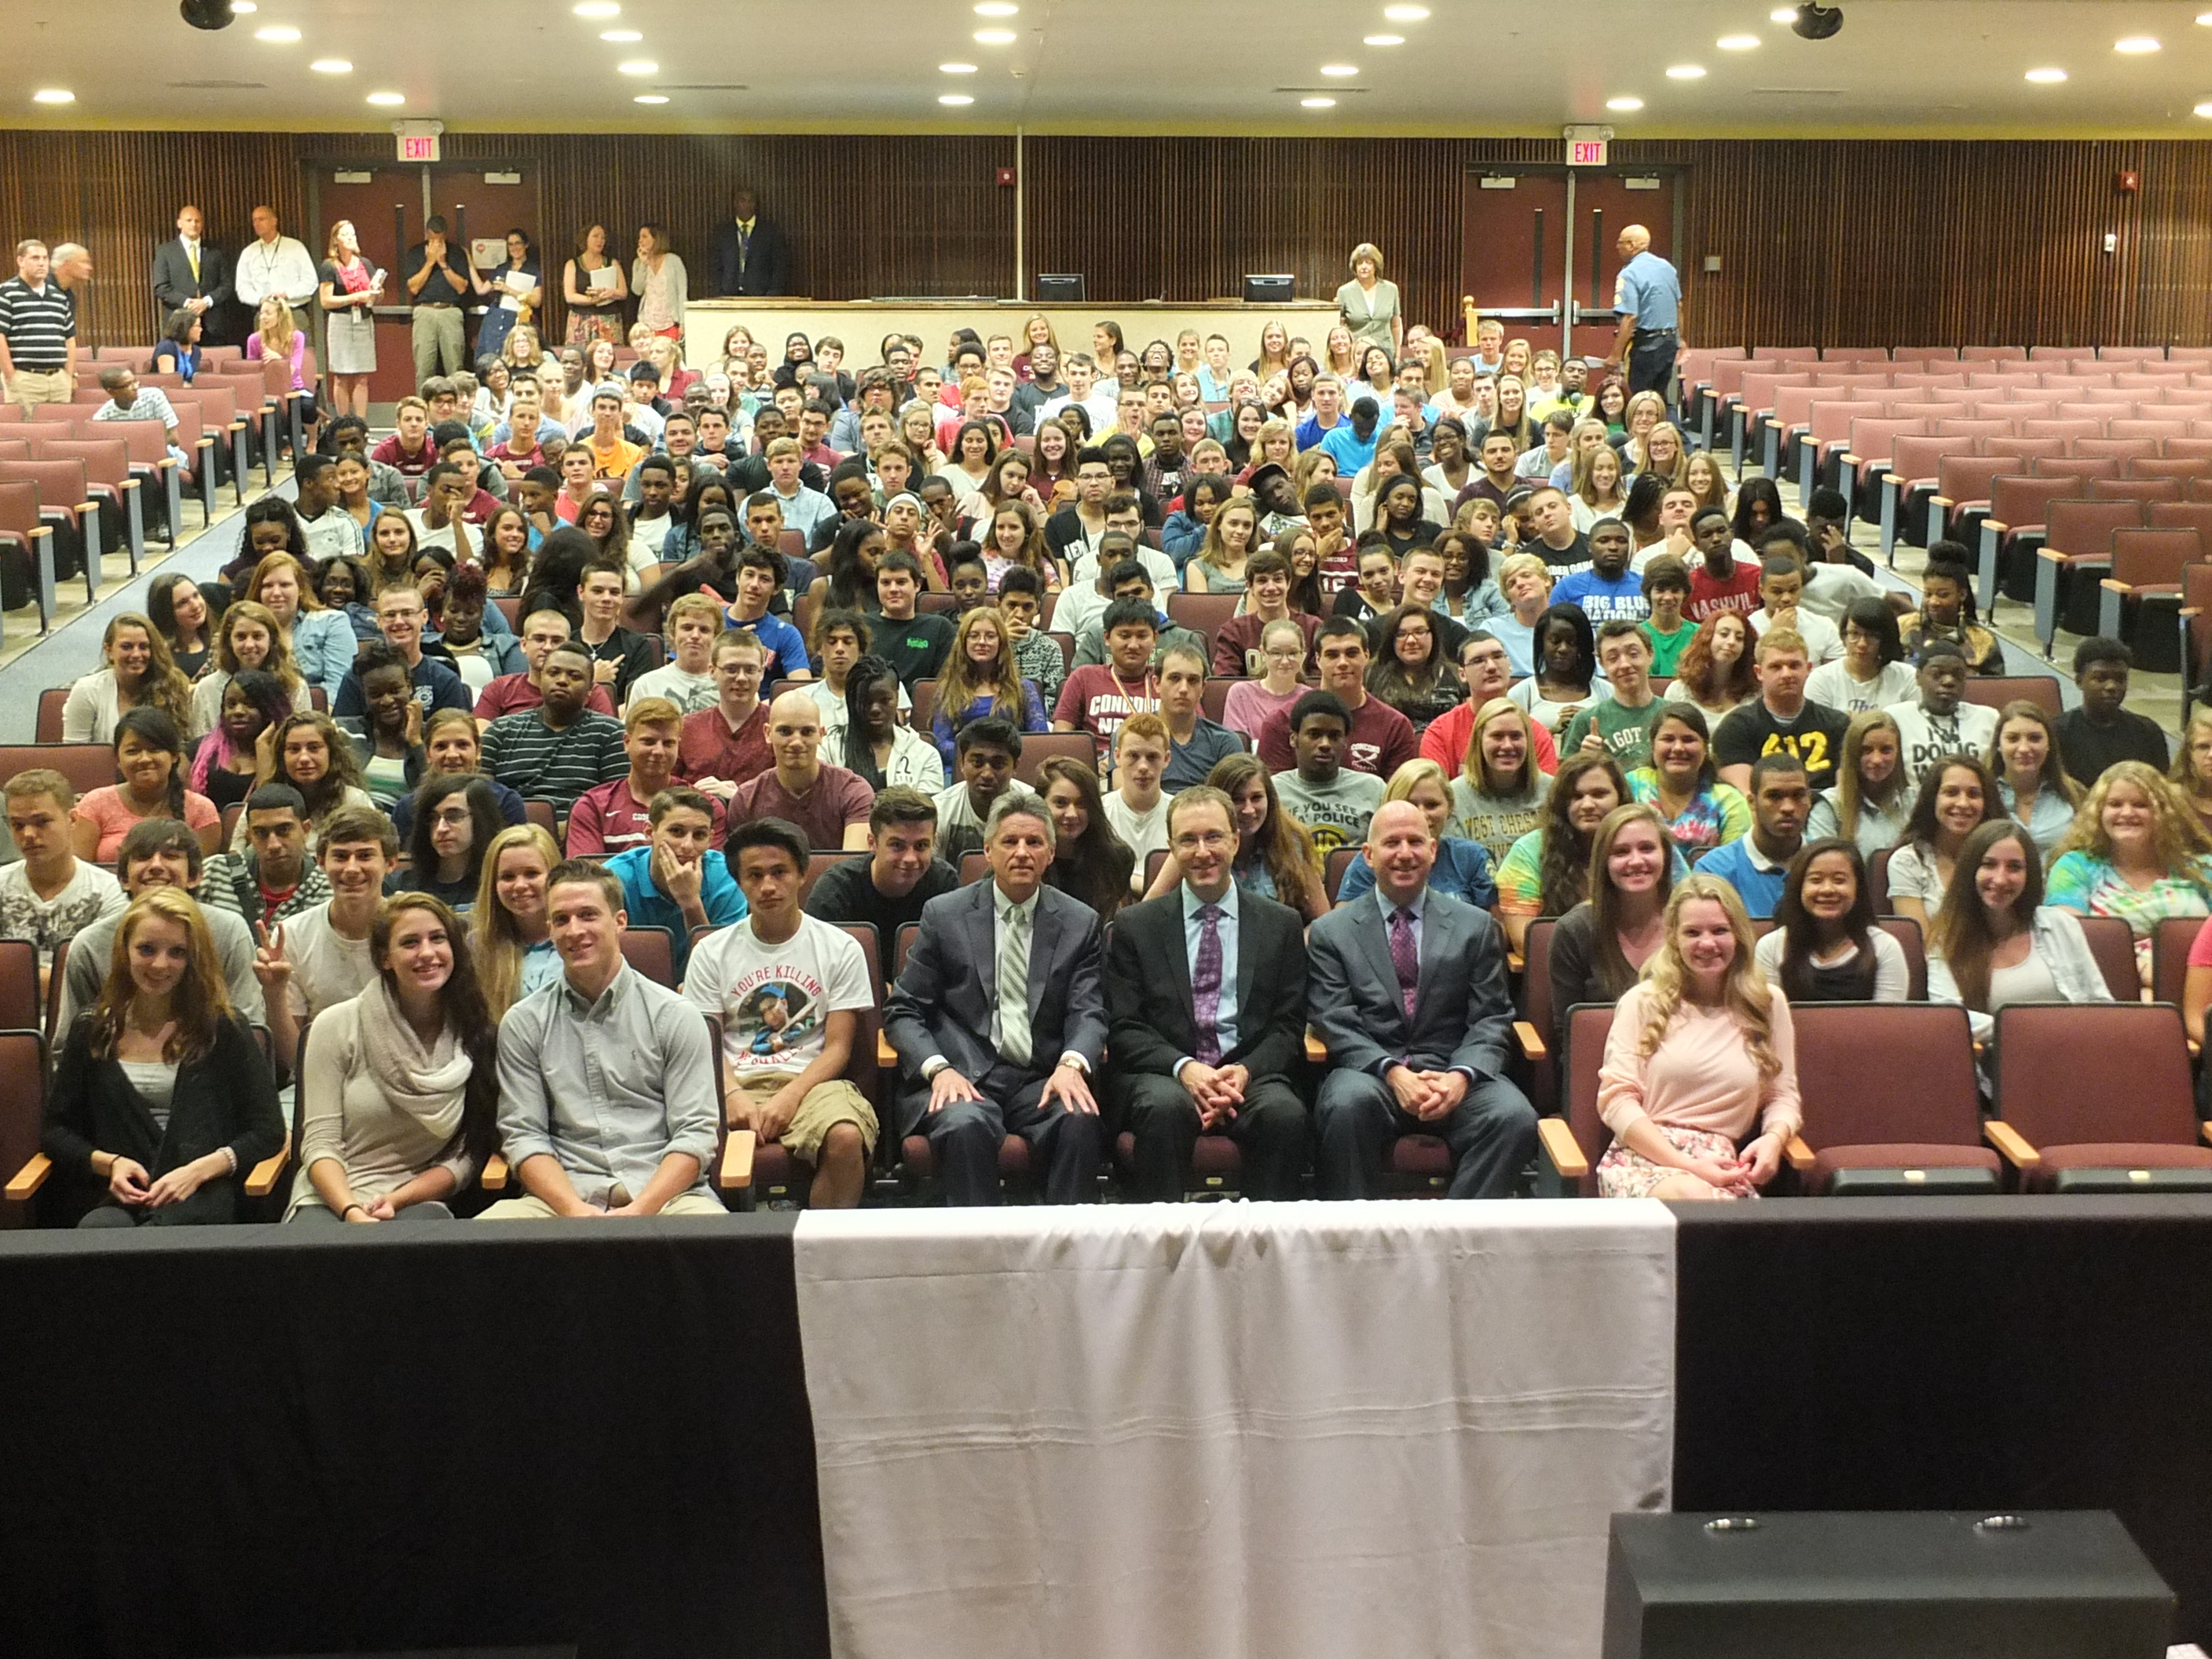 governor launches senior class tour to help students transition to governor markell ed the senior class of concord high school